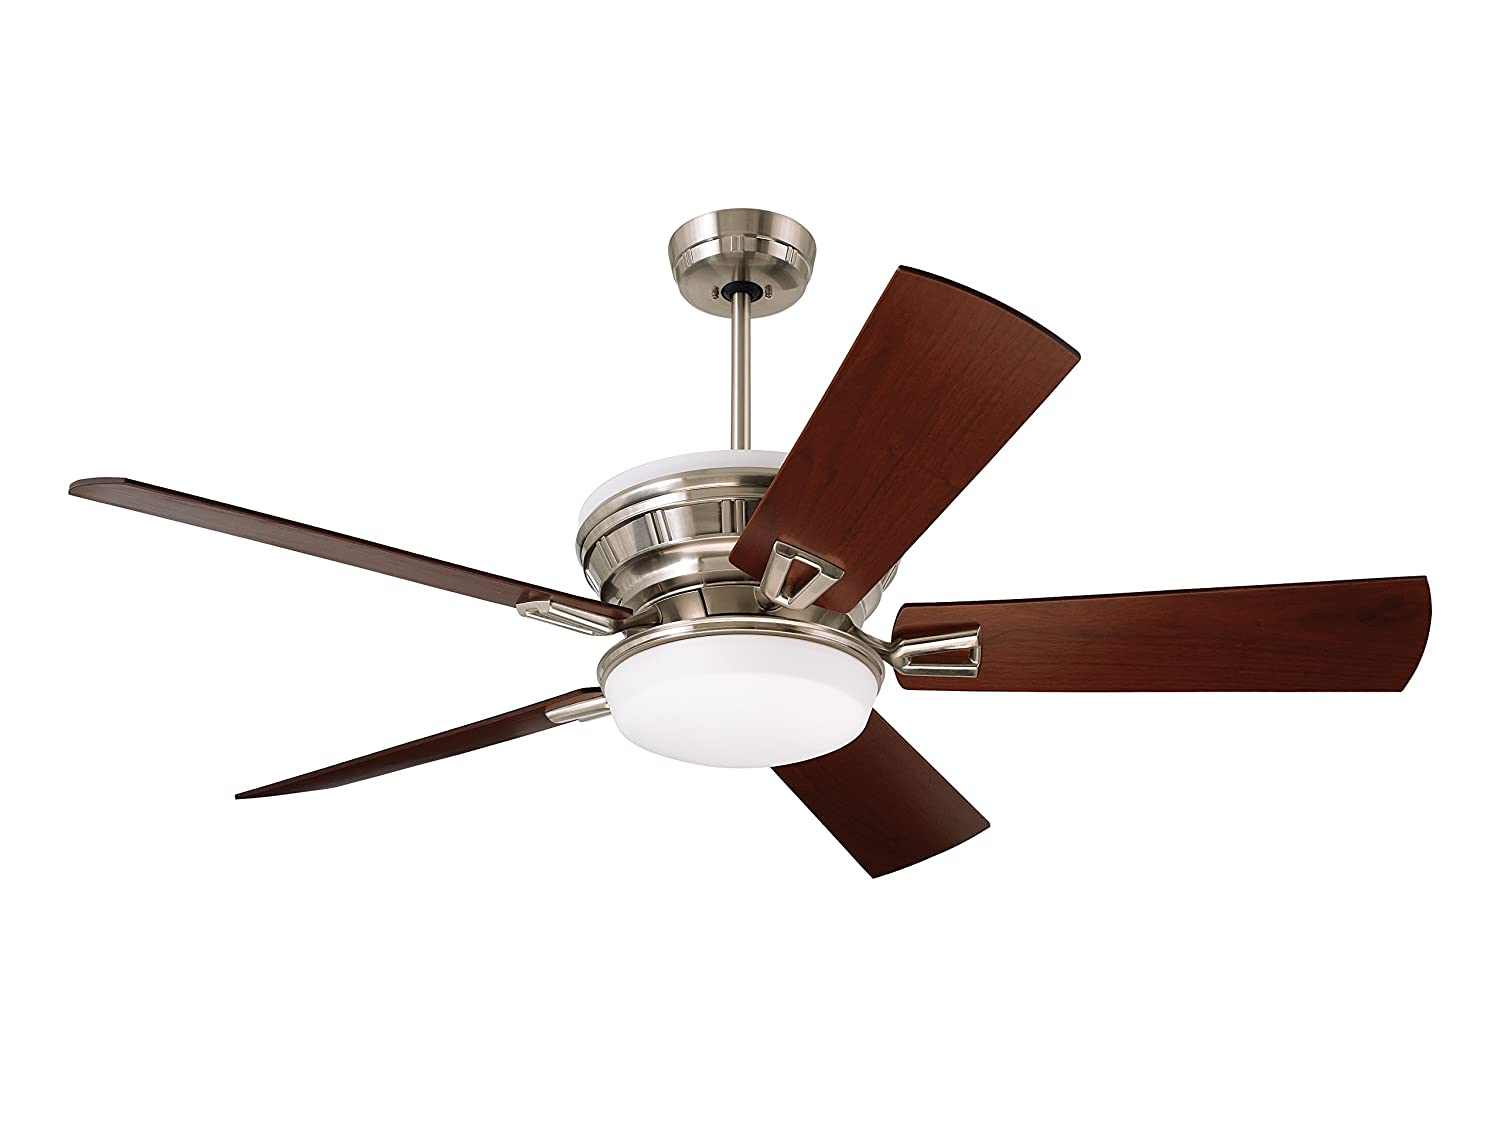 Emerson ceiling fans cf965bs portland eco ceiling fan with light emerson ceiling fans cf965bs portland eco ceiling fan with light wall control and 54 inch blades brushed steel finish amazon mozeypictures Image collections